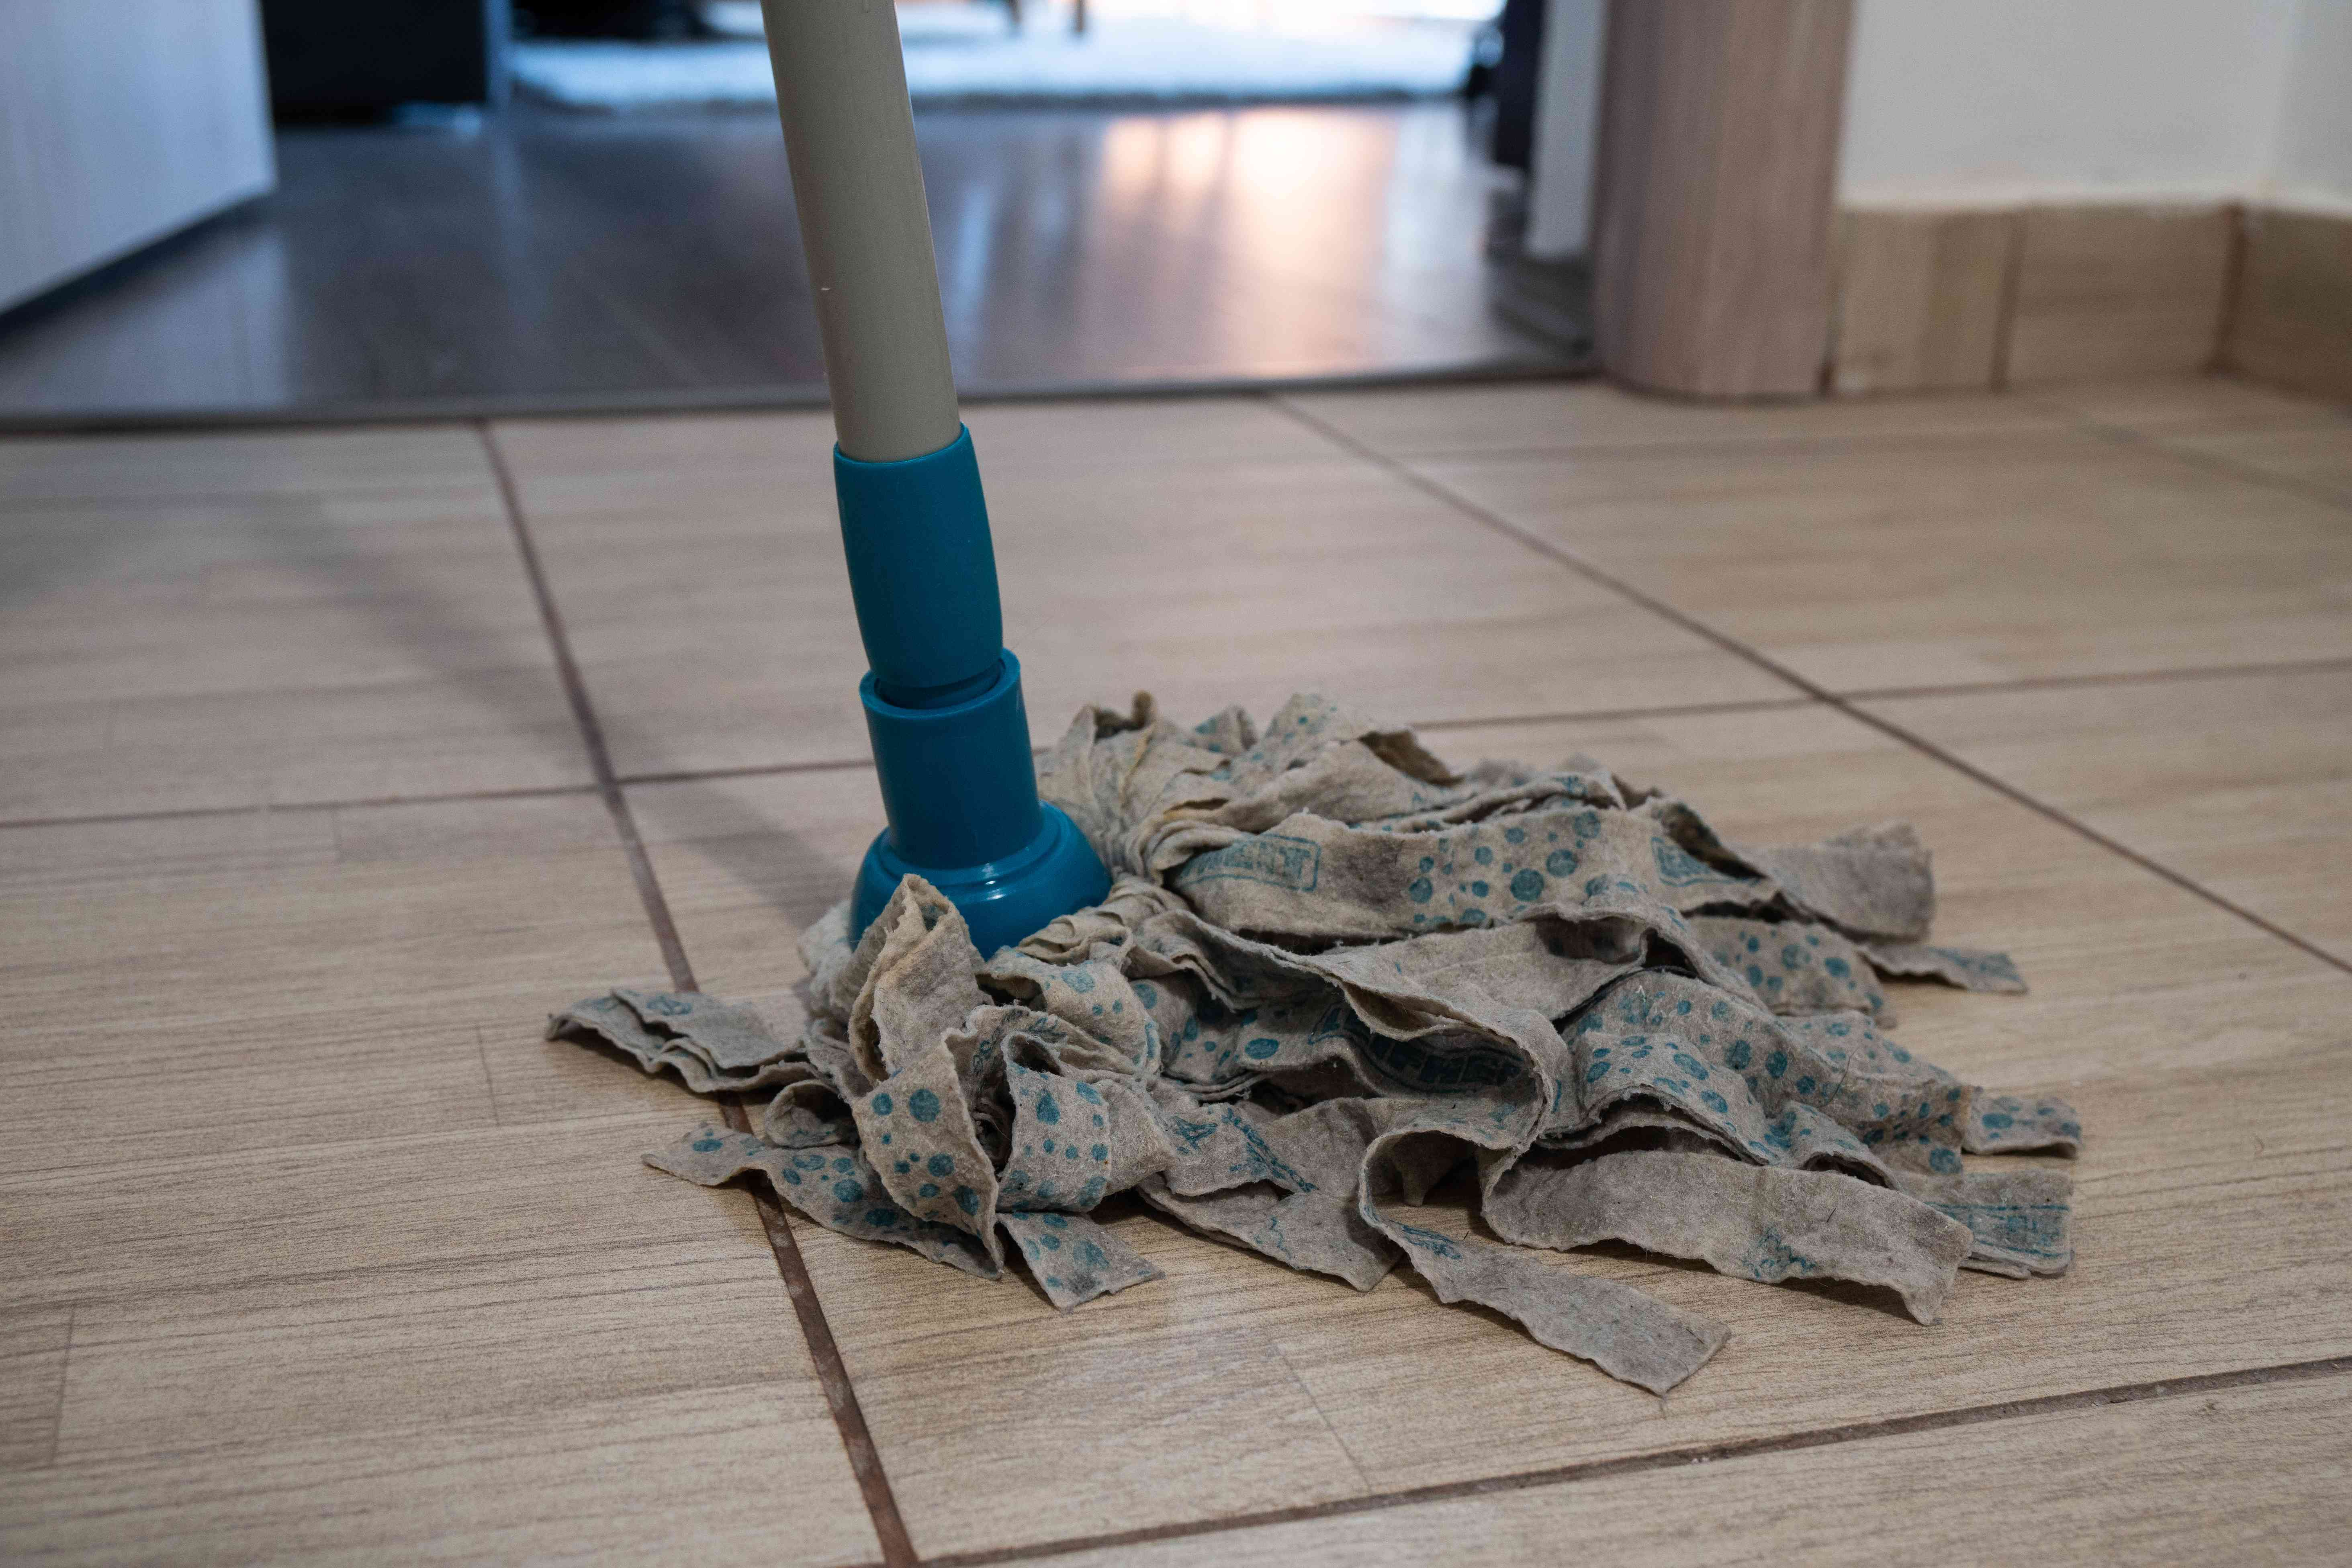 floor shot of blue and gray fabric mop being used on vinyl floor